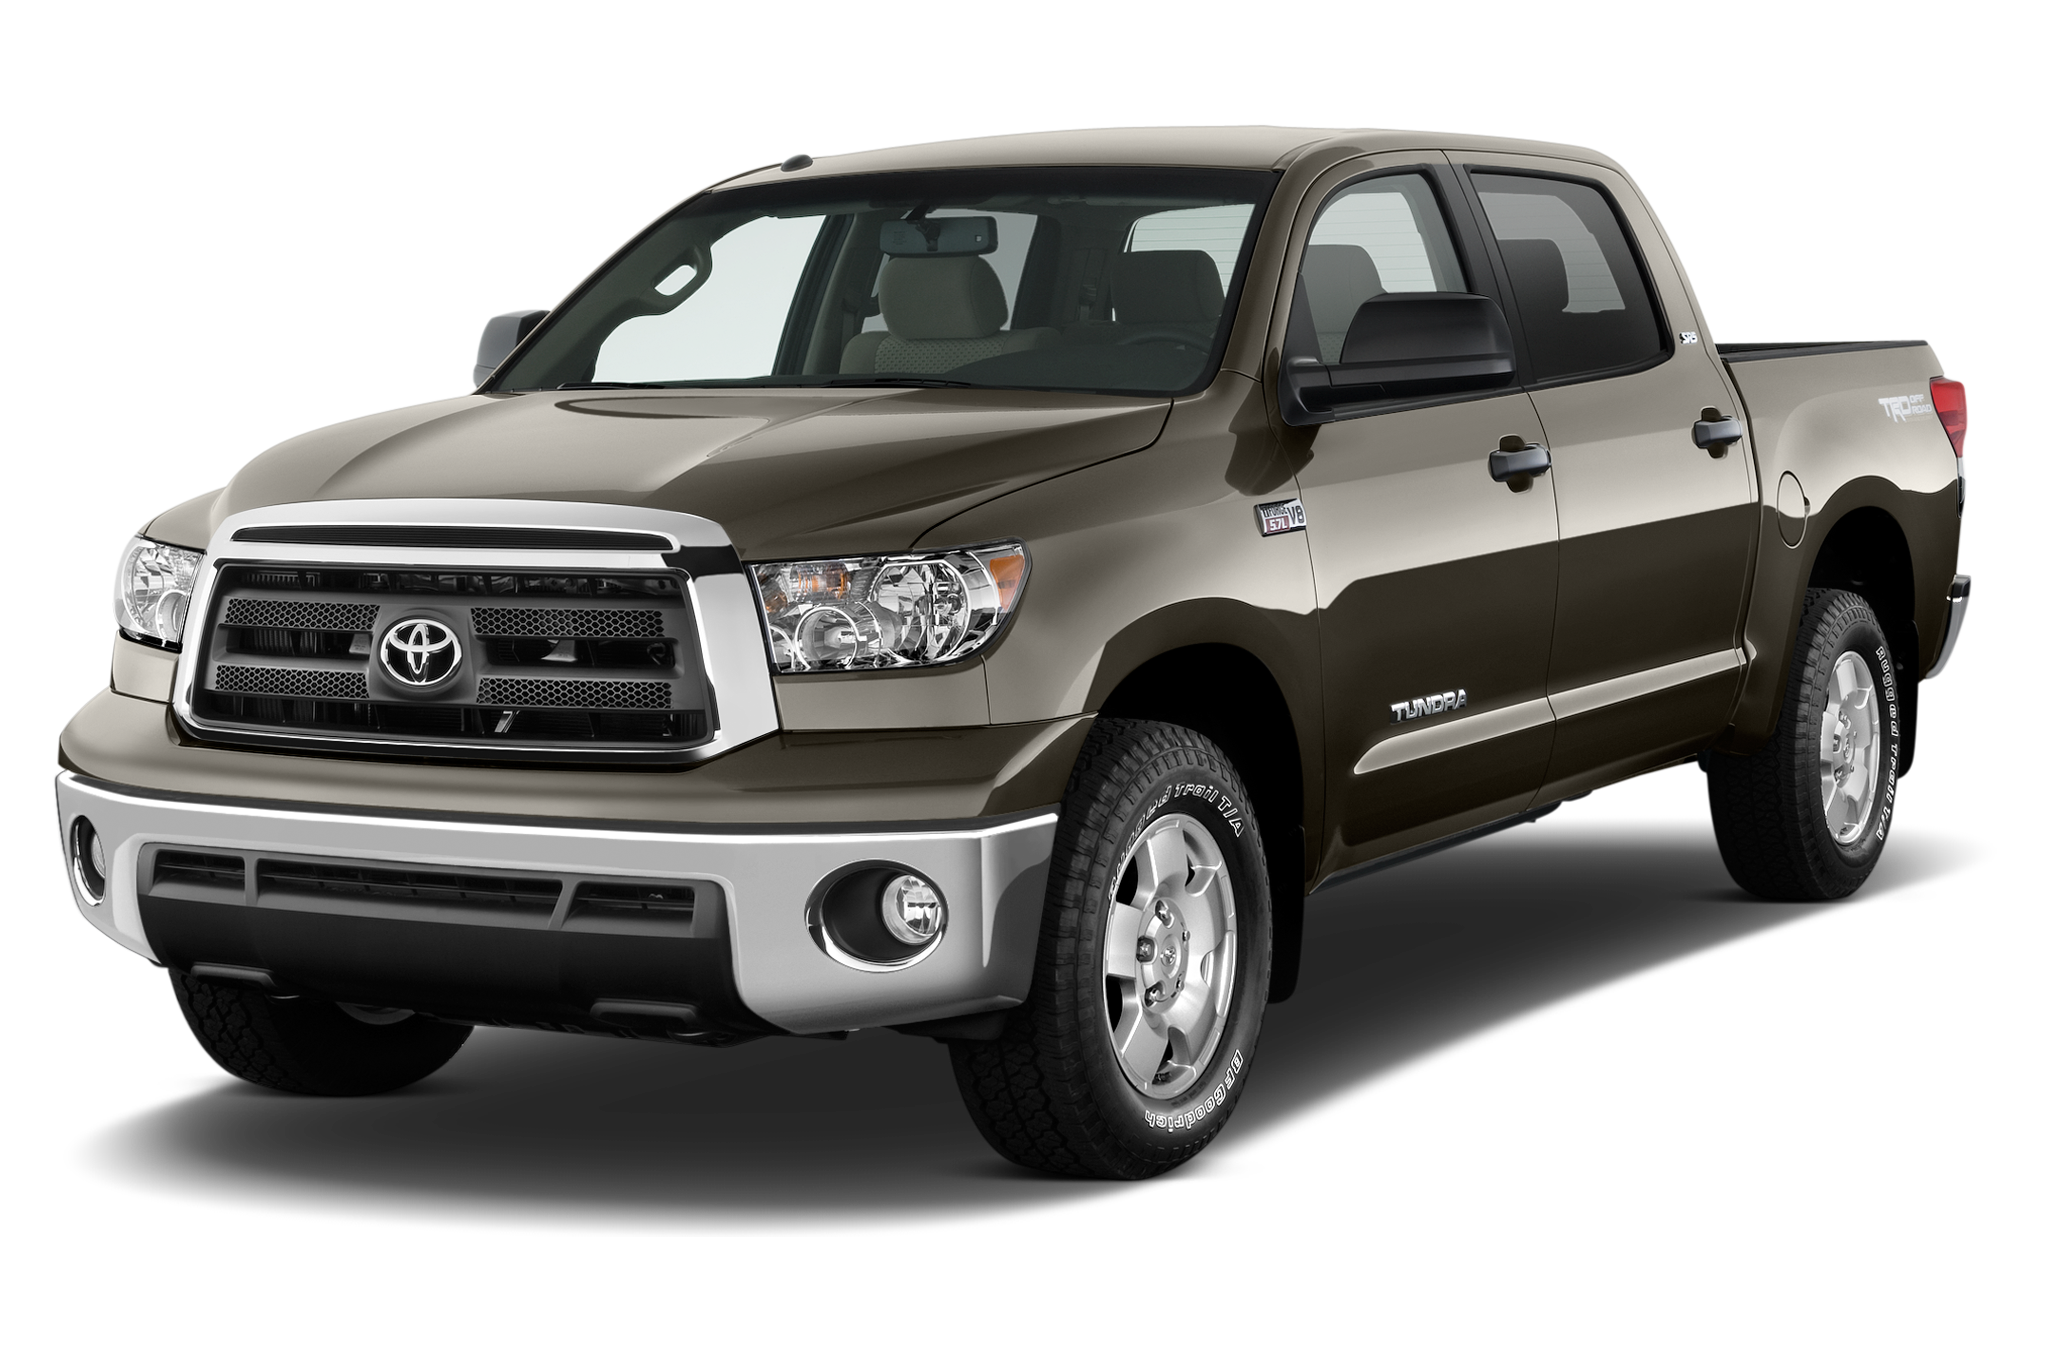 2010 toyota tundra limited 4x4 double cab editor 39 s. Black Bedroom Furniture Sets. Home Design Ideas